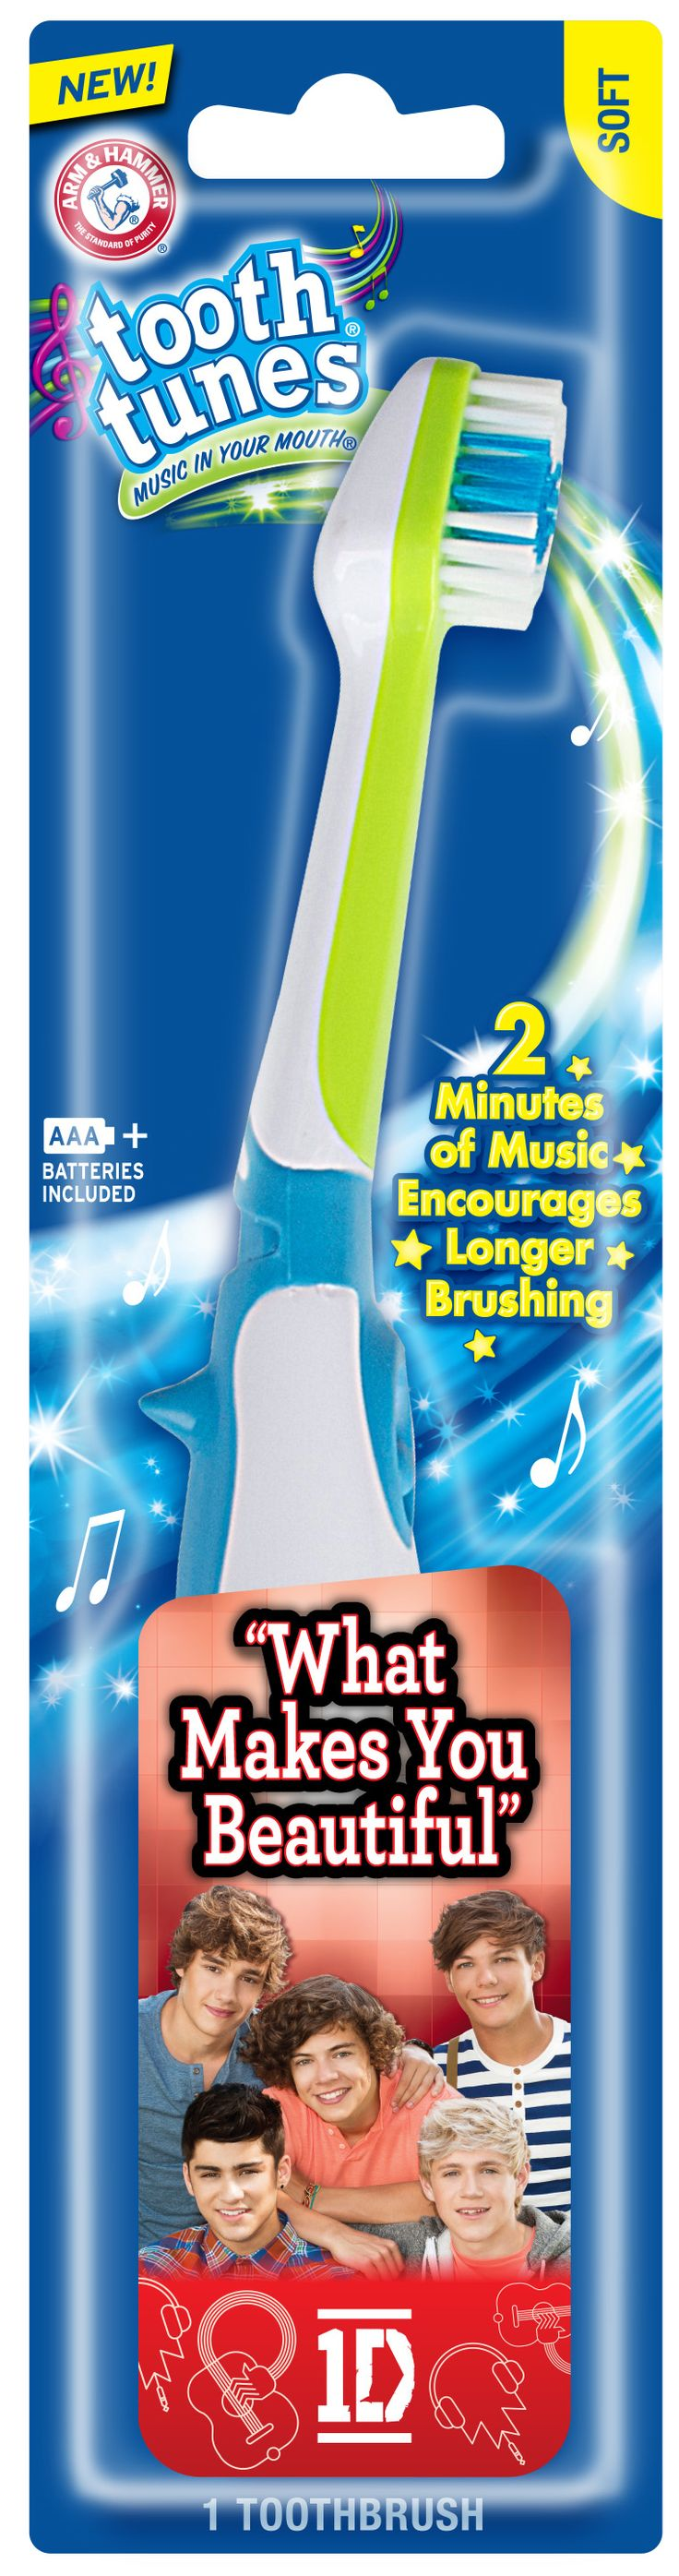 ARM & HAMMER™ Tooth Tunes™ One Direction Toothbrush Product Review #spon #ToothTunes1D